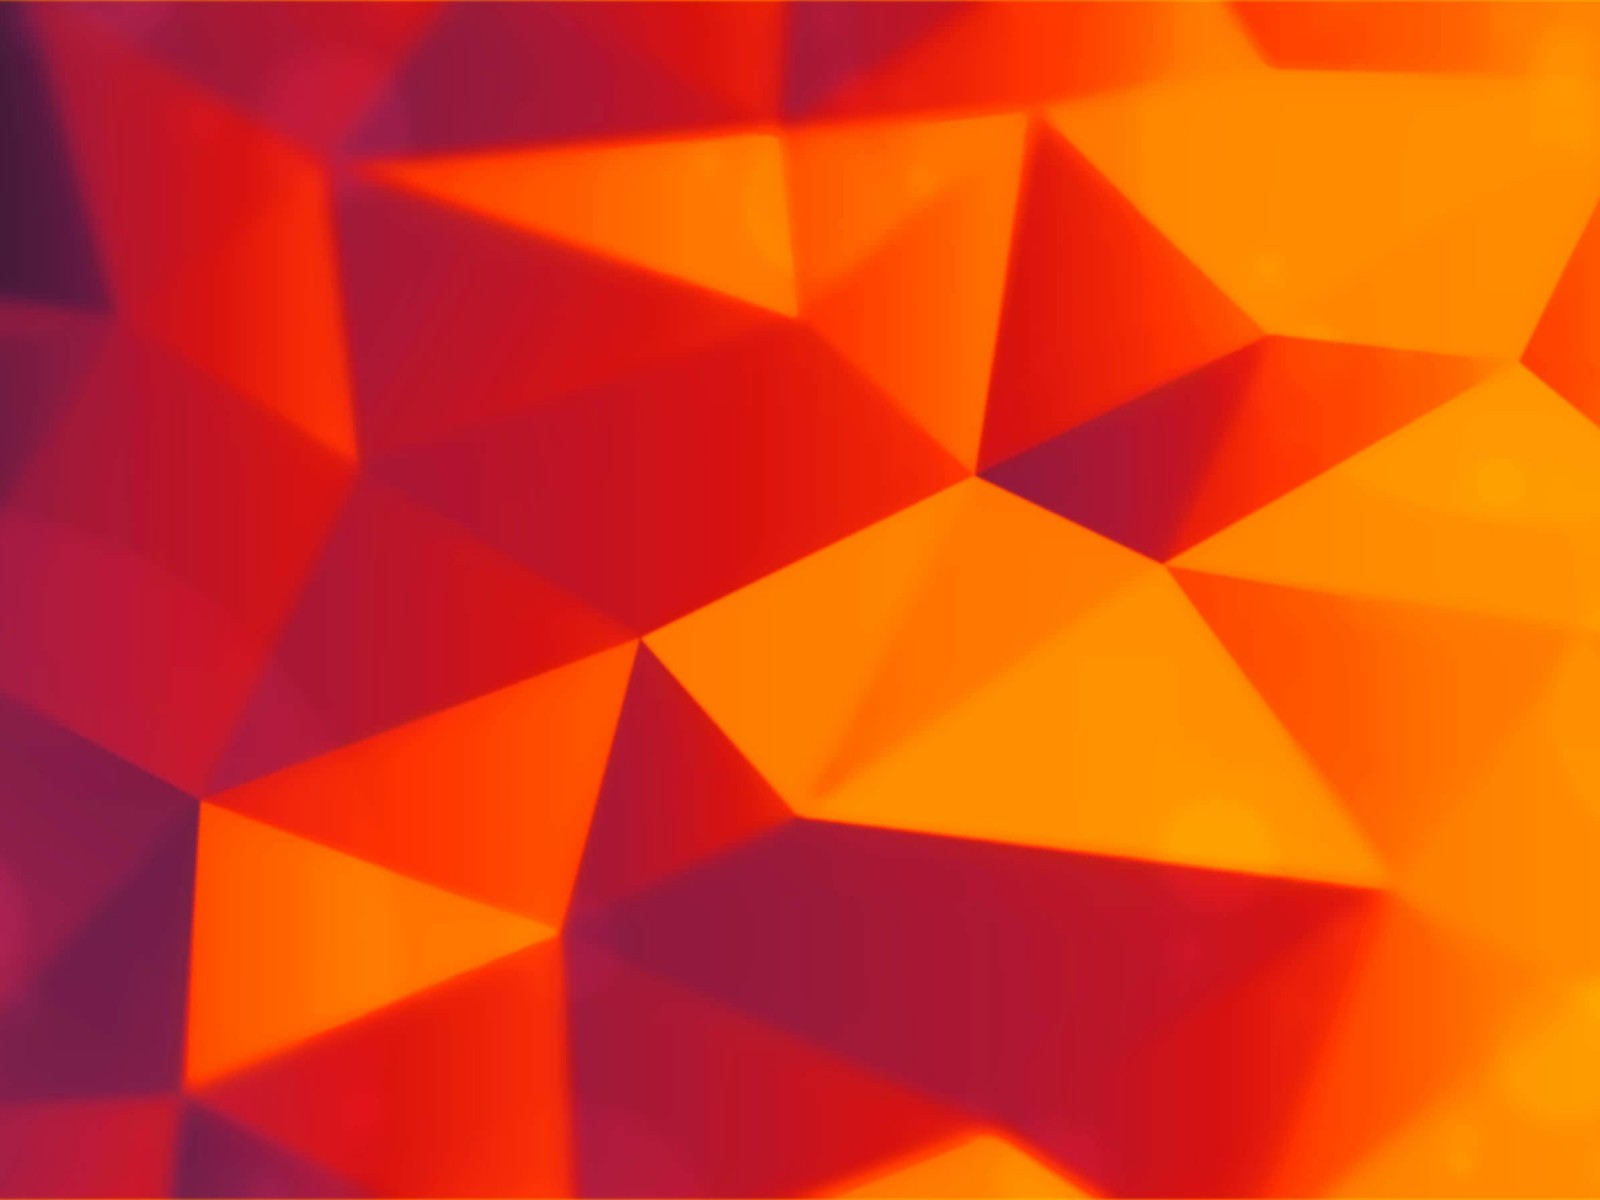 Orange Polygons Wallpaper for Desktop 1600x1200